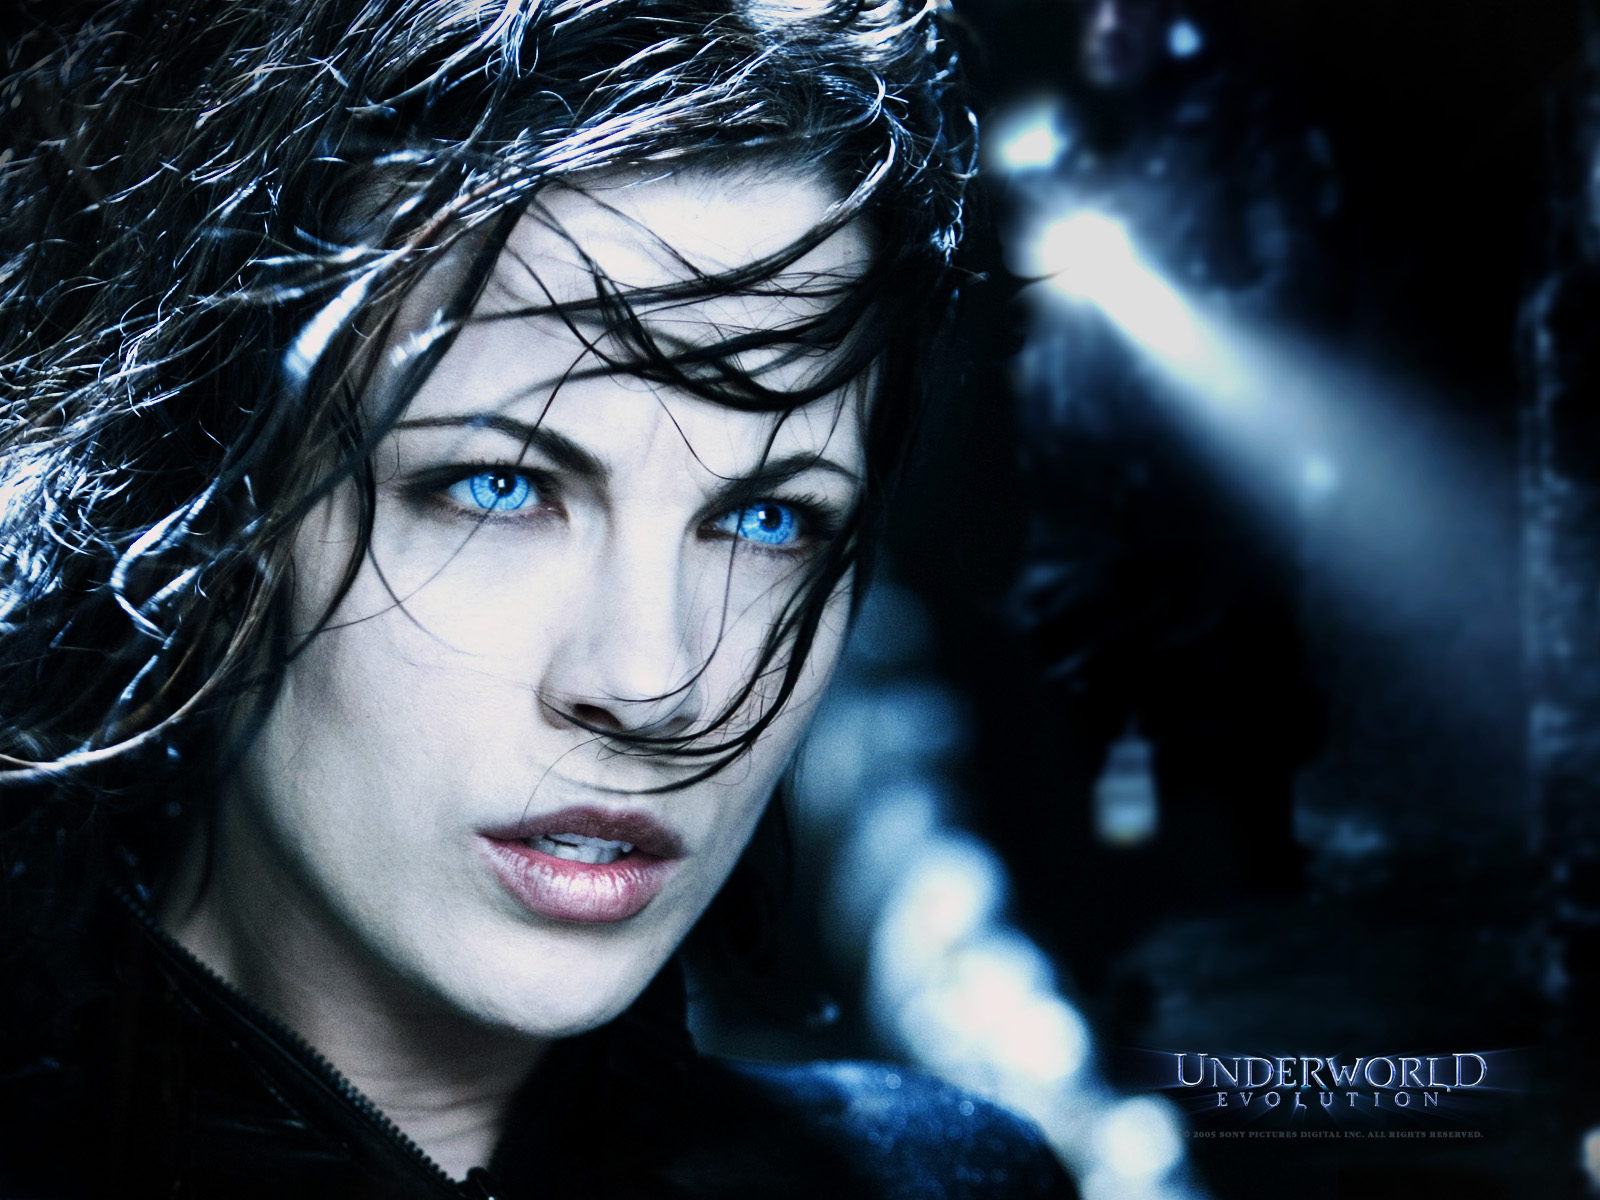 http://2.bp.blogspot.com/--FdbJ10M3_4/Toc9vhZS9_I/AAAAAAAAC4E/dQWRg3fLllc/s1600/Kate_Beckinsale_in_Underworld-_Evolution_Wallpaper_2_1280.jpg